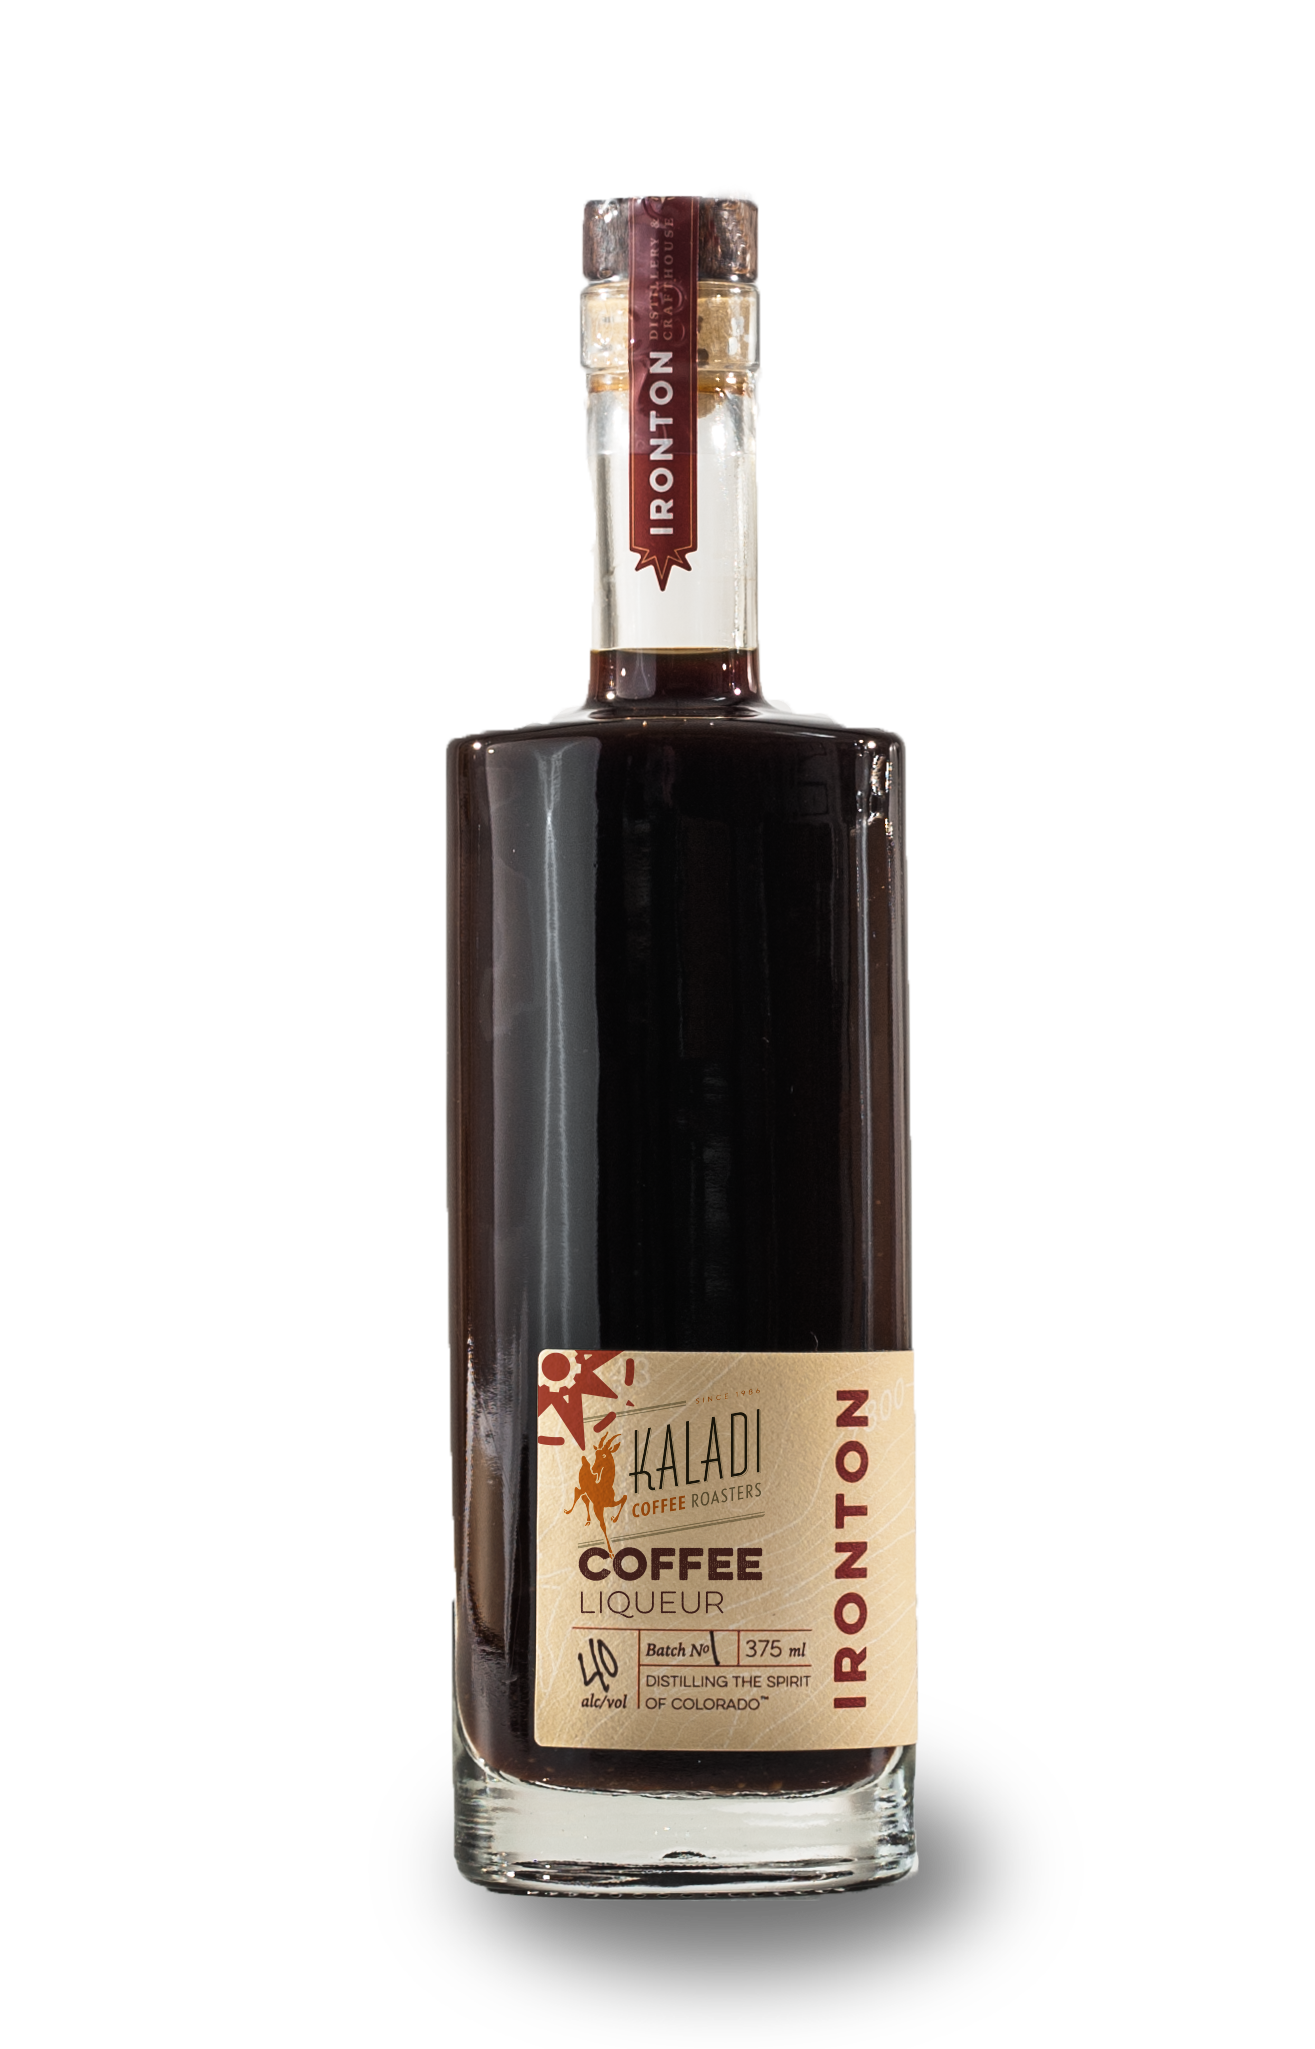 coffee-photoshopped-kaladi-label.png